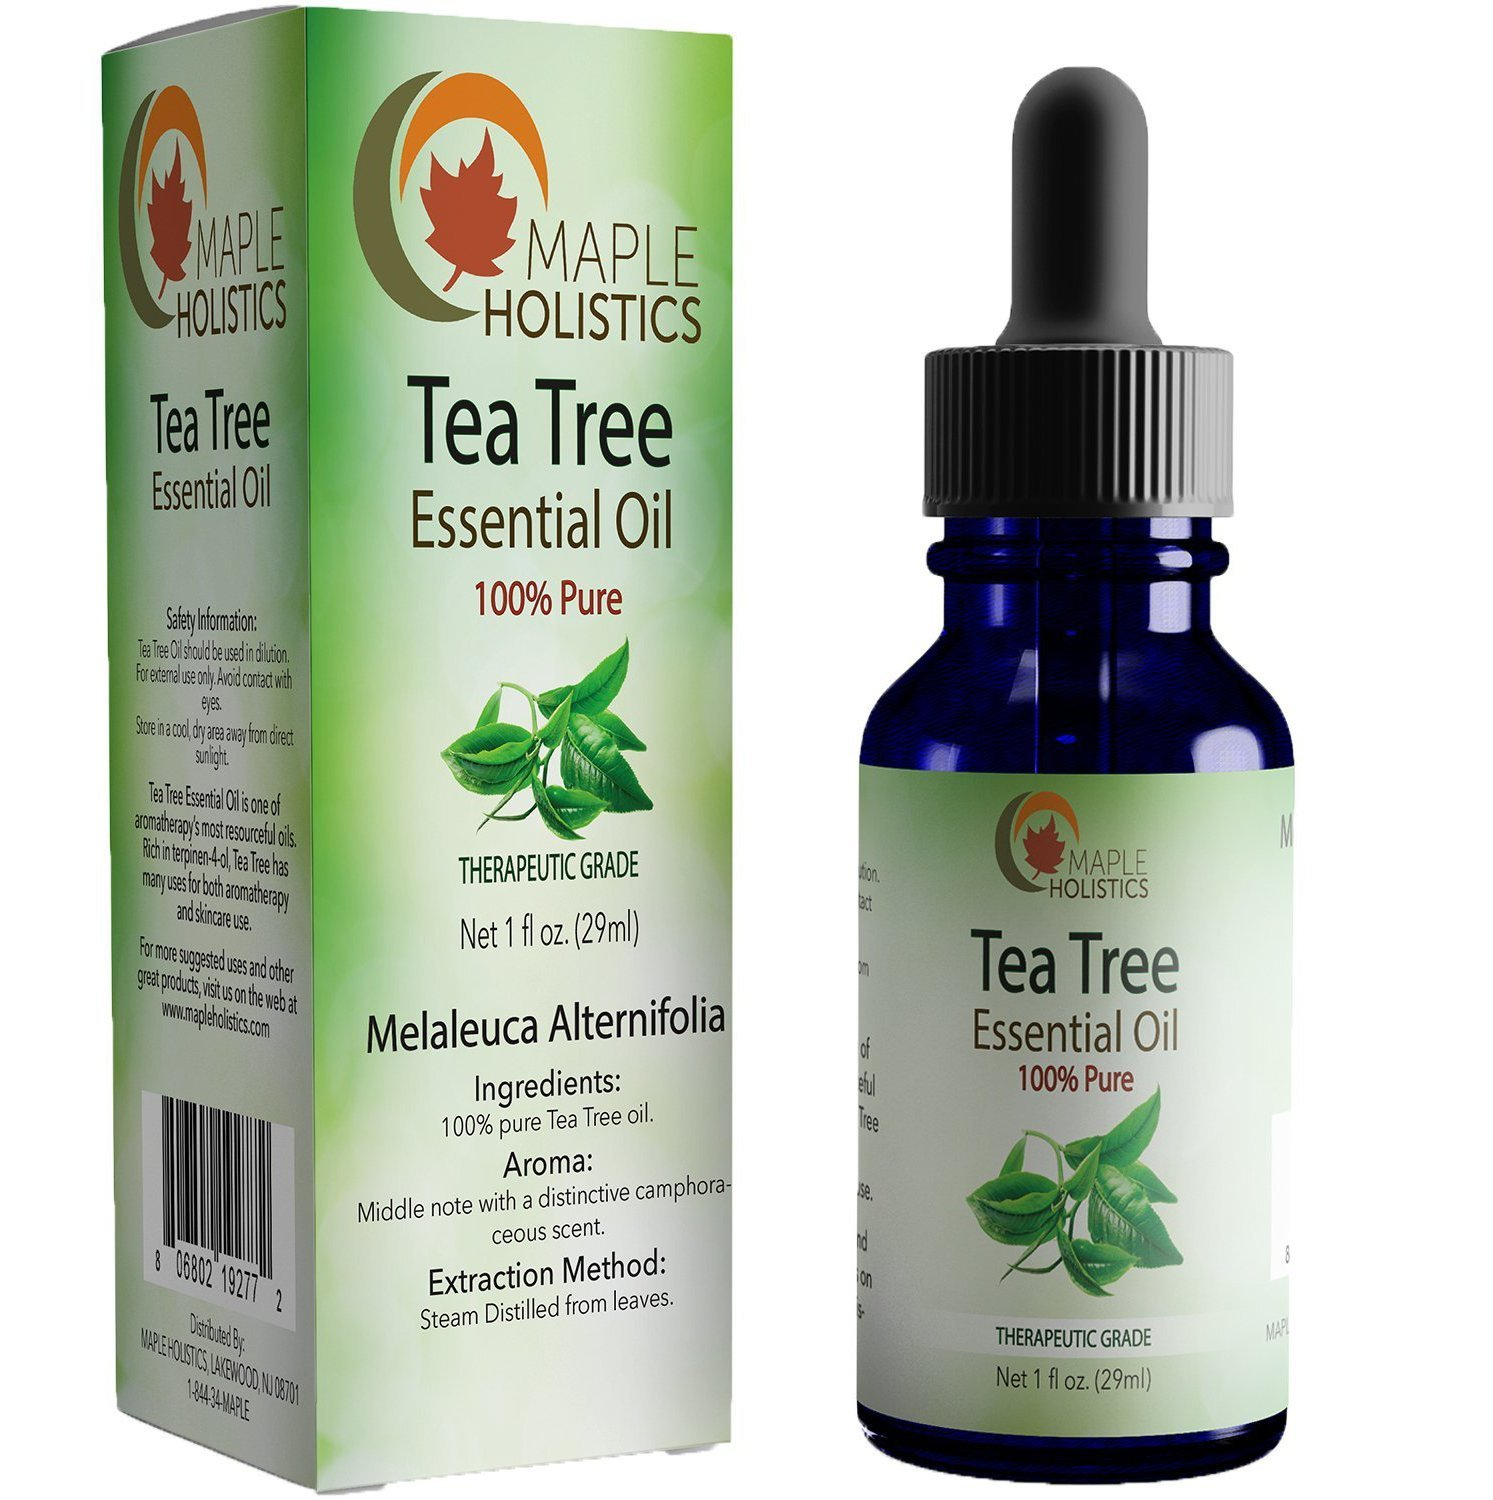 100% Pure Tea Tree Oil Natural Essential Oil with Antifungal Antibacterial Benefits For Face Skin Hair Nails Heal Acne Psoriasis Dandruff Piercings Cuts Bug Bites Multipurpose Surface Cleaner by Maple Holistics (Image #1)